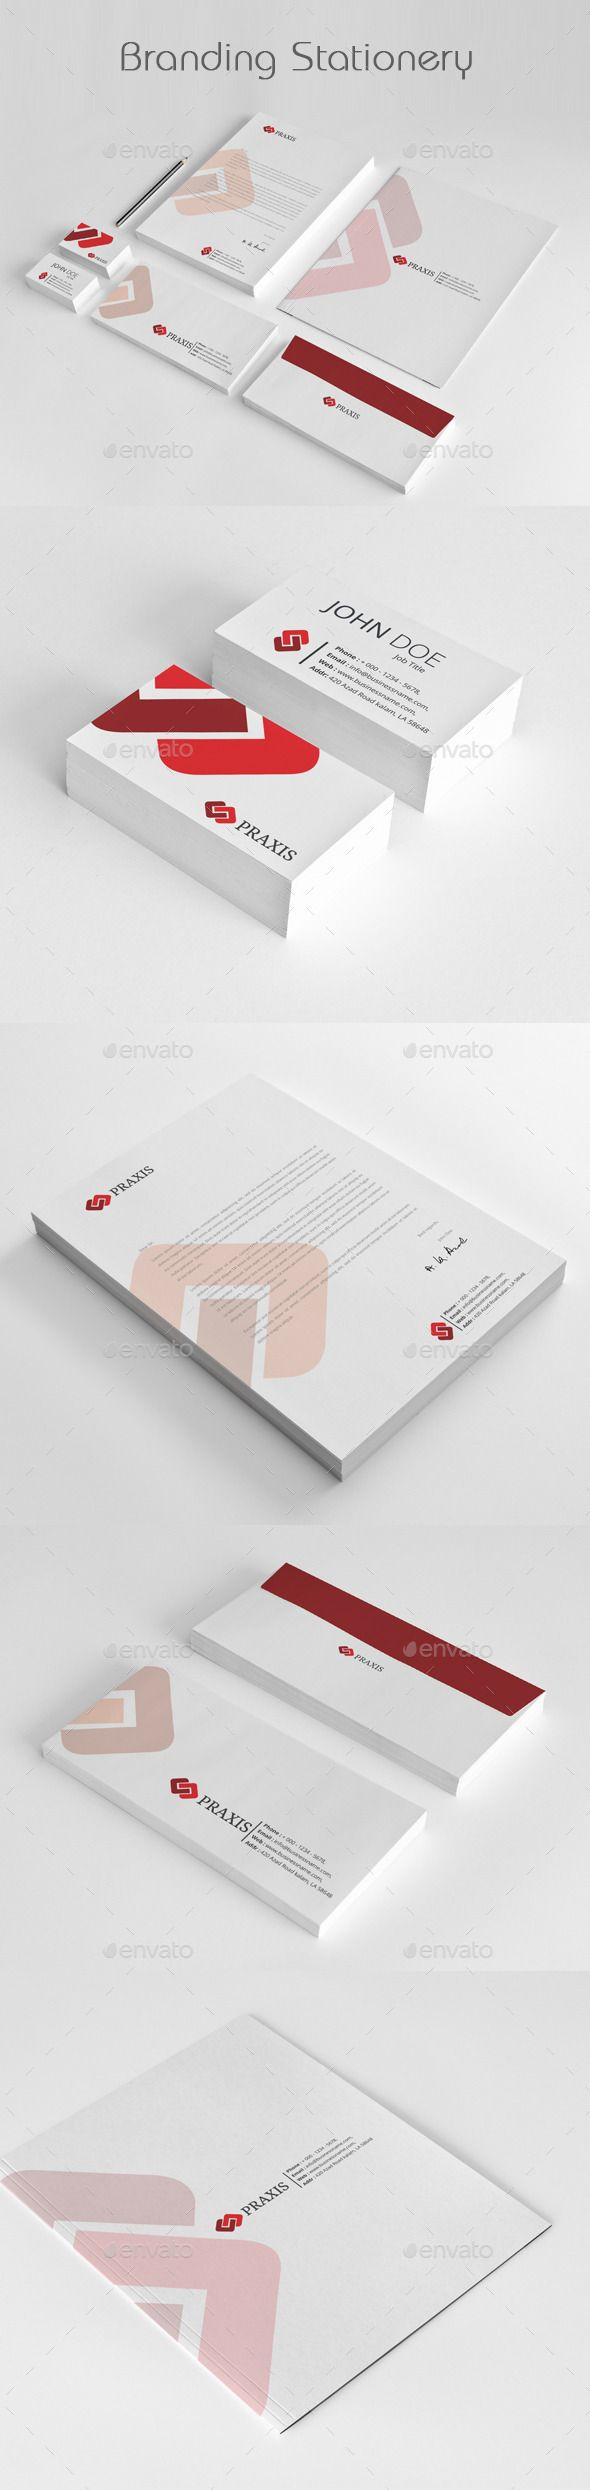 #Branding #Stationery #Templates - Stationery Print Templates Download here: https://graphicriver.net/item/branding-stationery-templates/11907005?ref=alena994